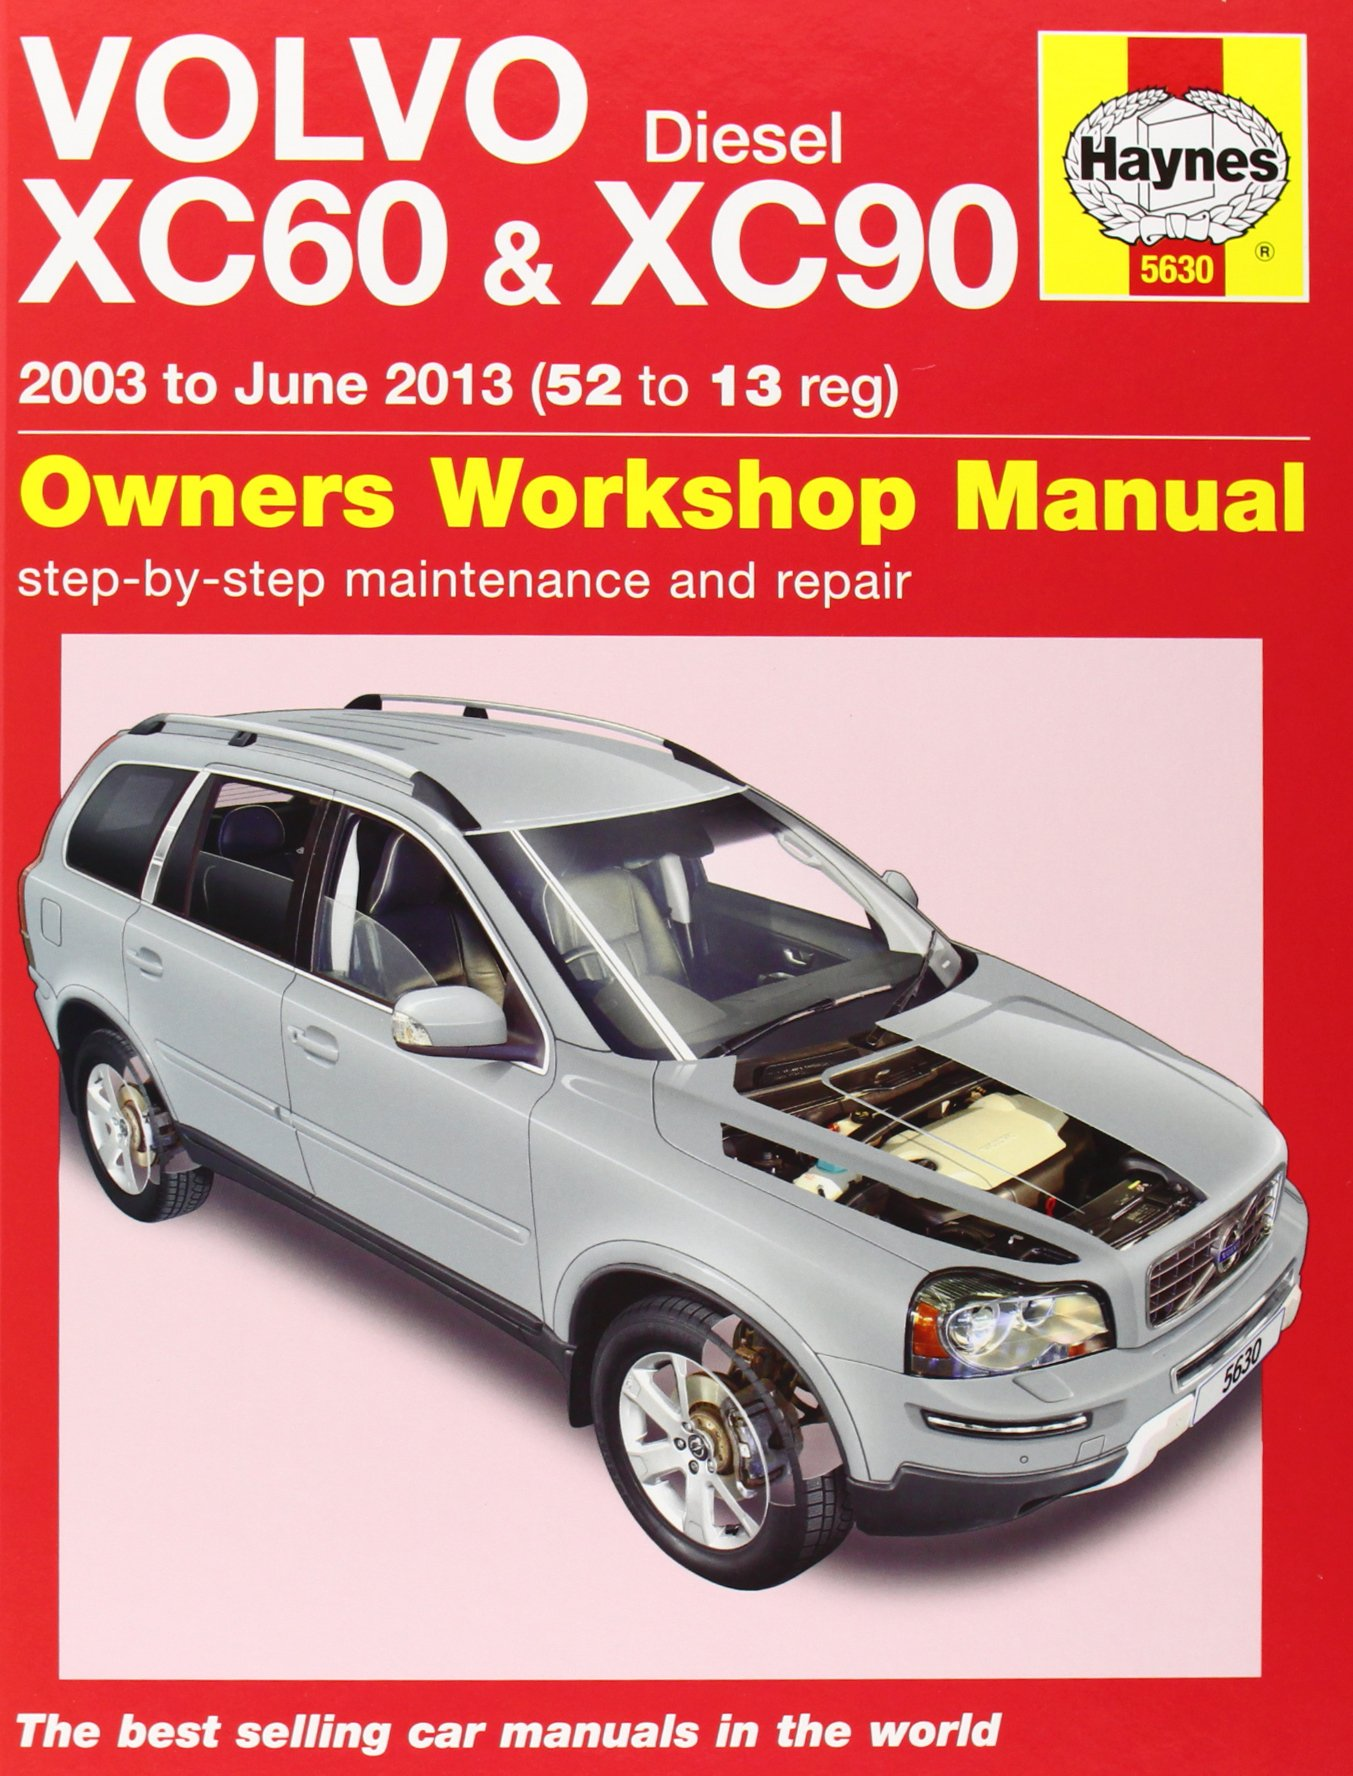 Volvo XC60 & XC90 Diesel Owners Workshop Manual: 2003 - 2013 (Haynes  Service and Repair Manuals): M. R. Storey: 9780857336309: Amazon.com: Books